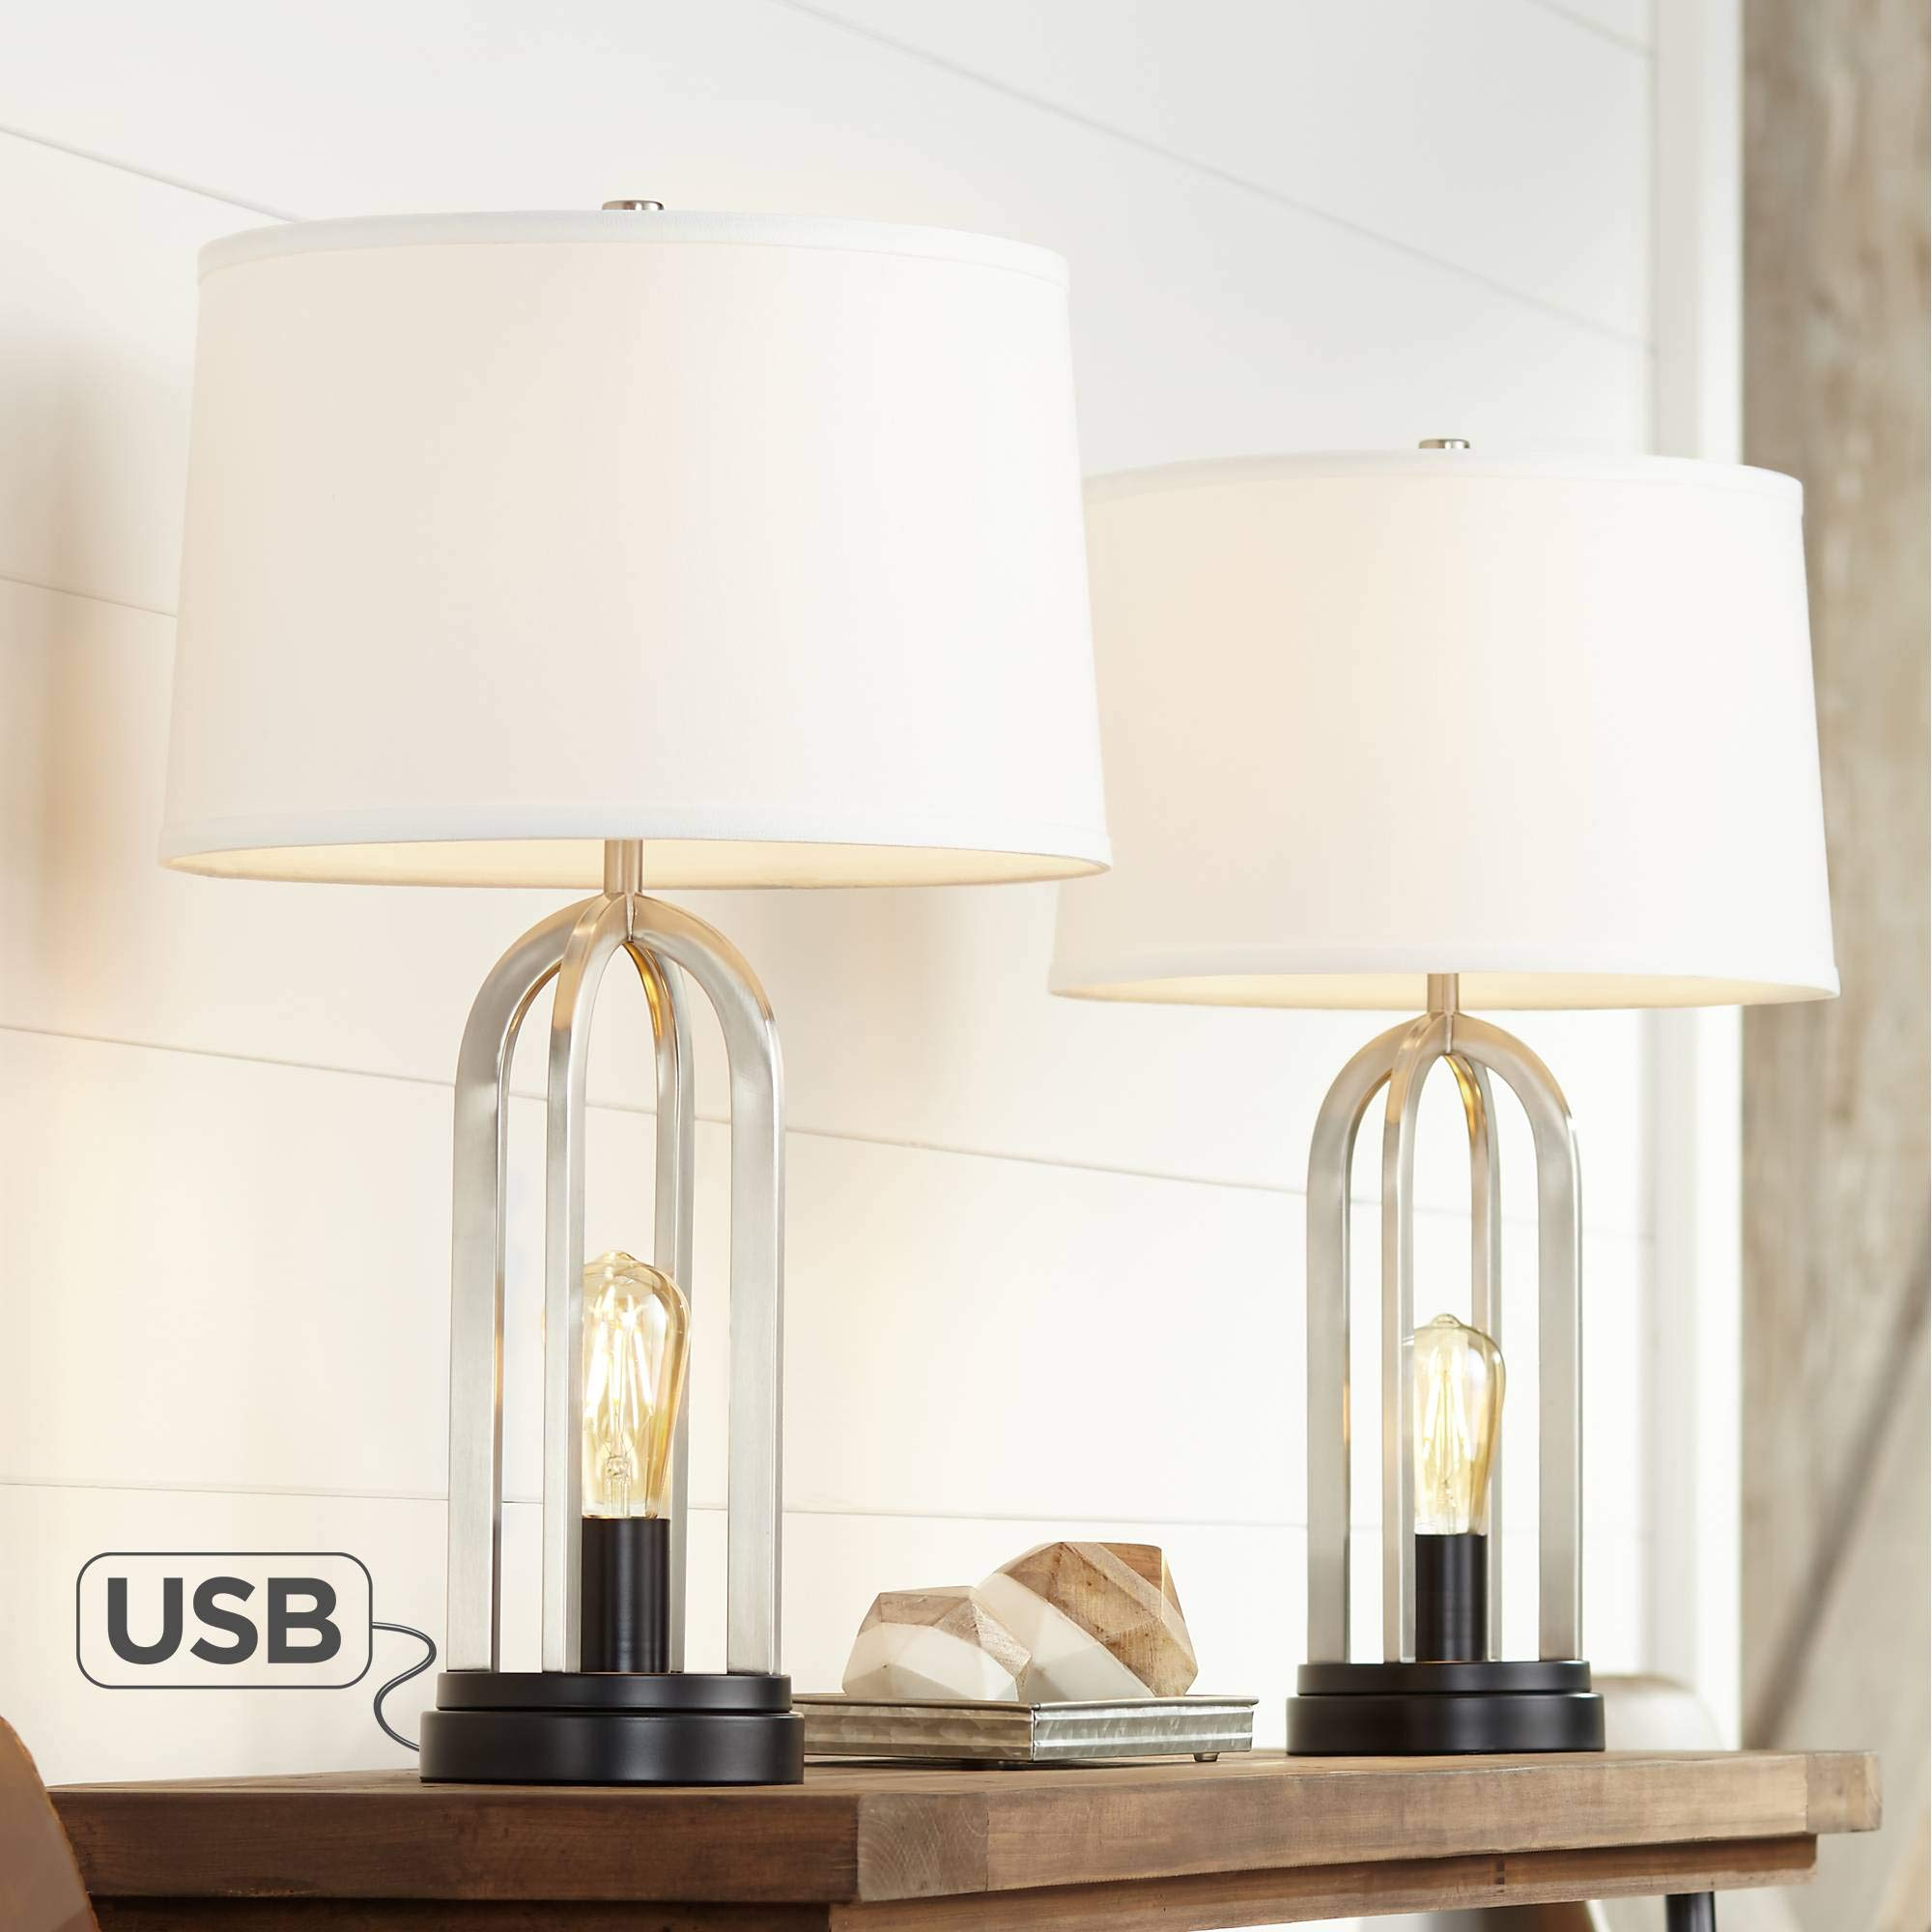 Marcel Brushed Nickel Night Light USB Table Lamps Set of 2-360 Lighting